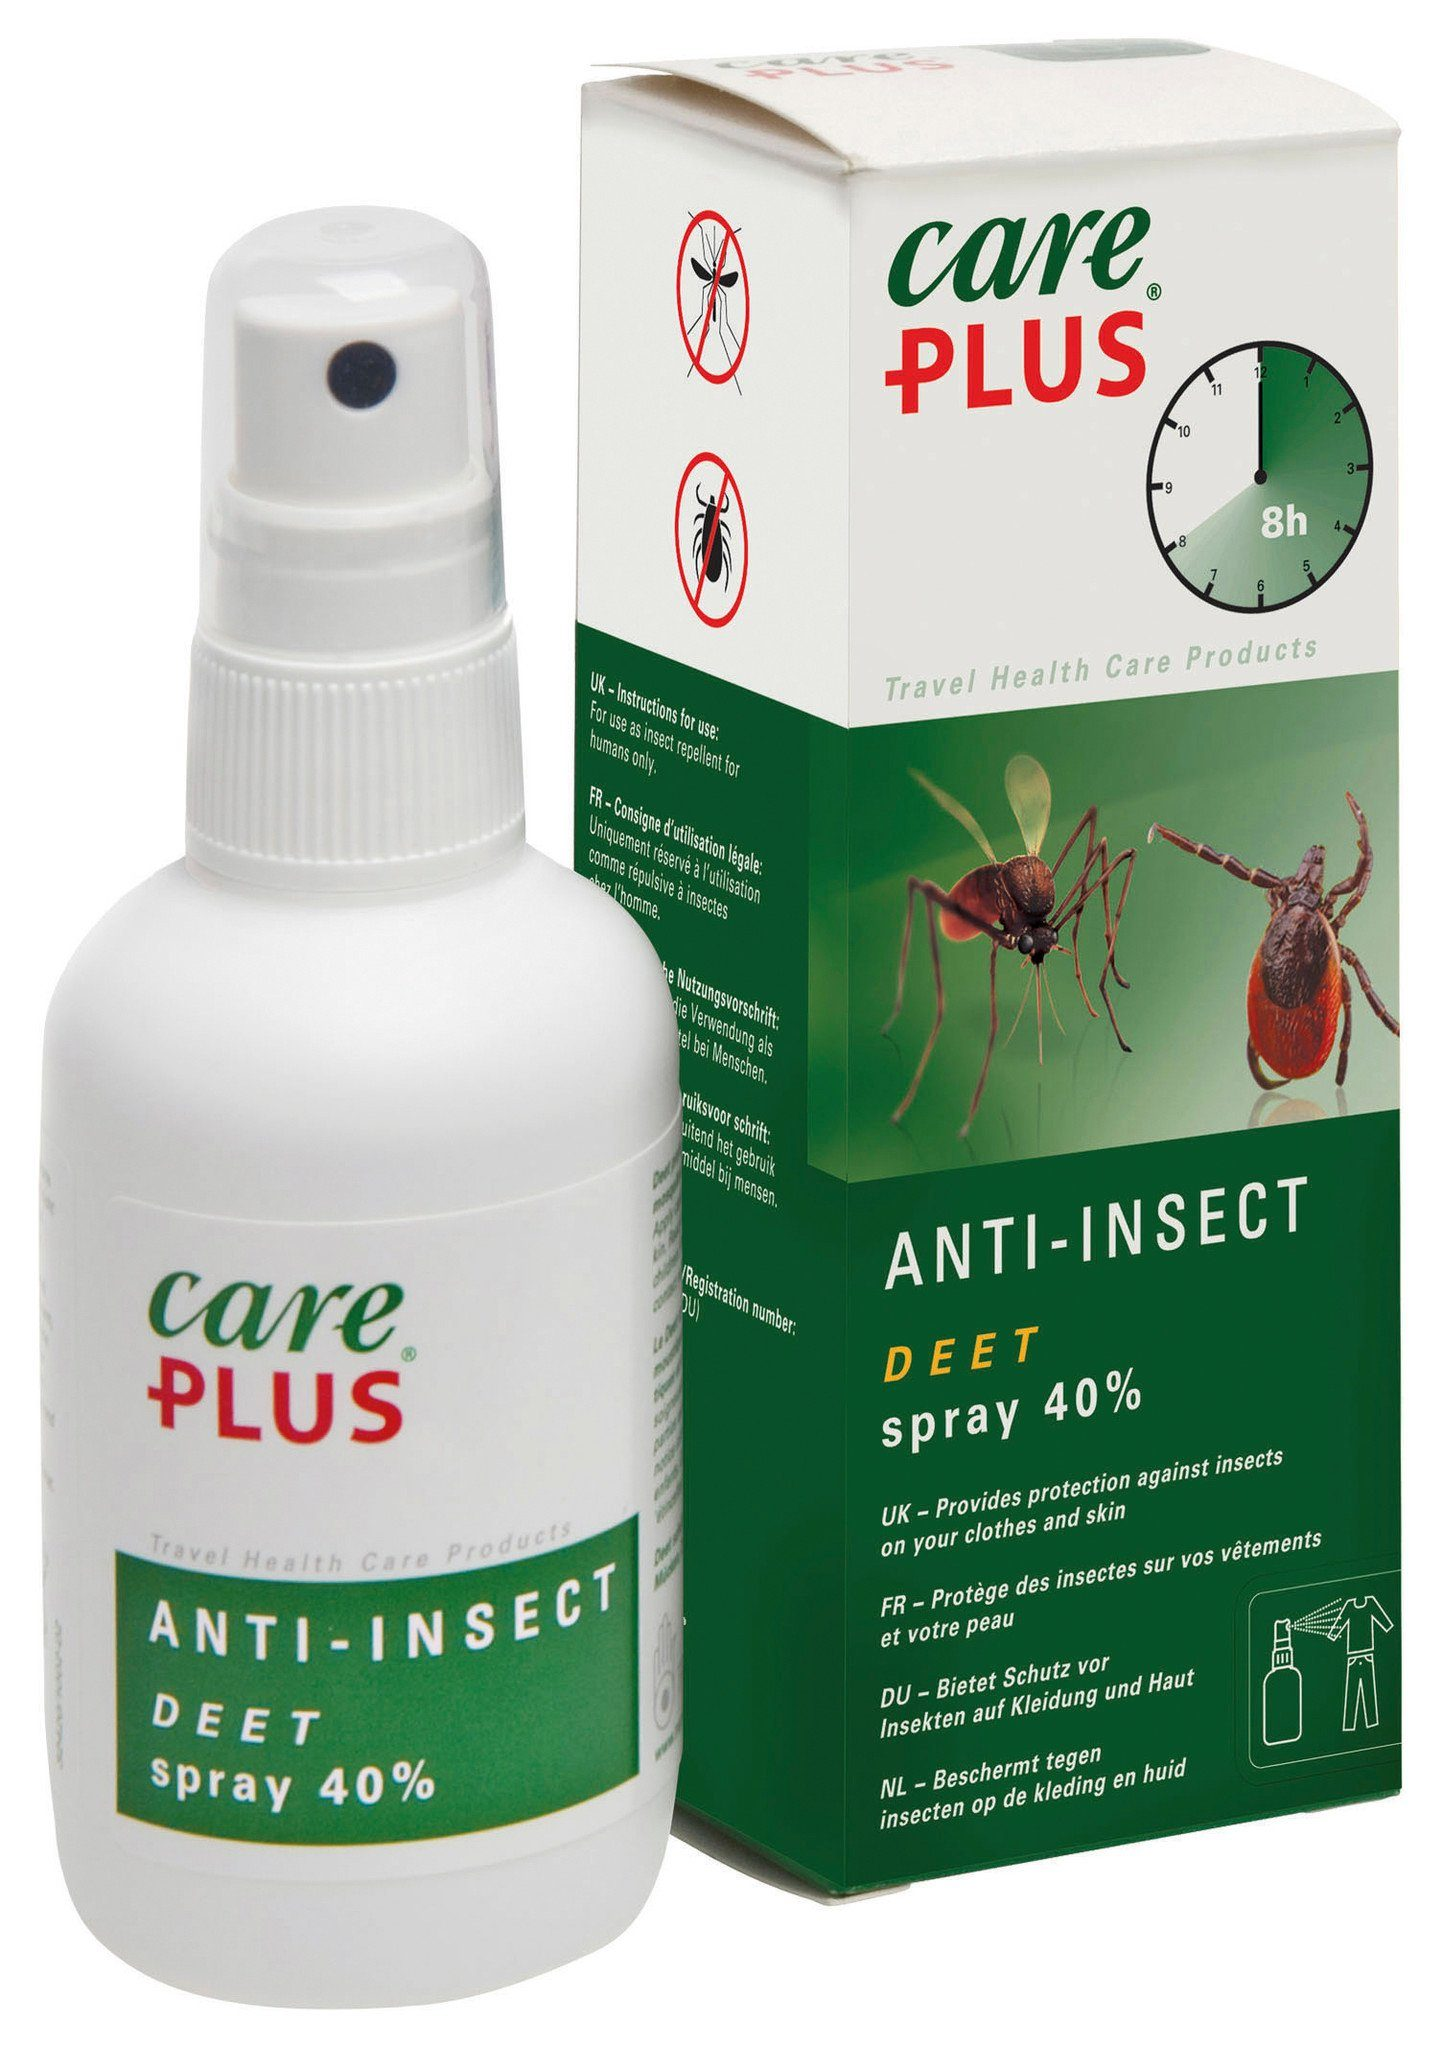 CarePlus Reinigungsmittel »Anti-Insect Deet Spray 40% 100ml«